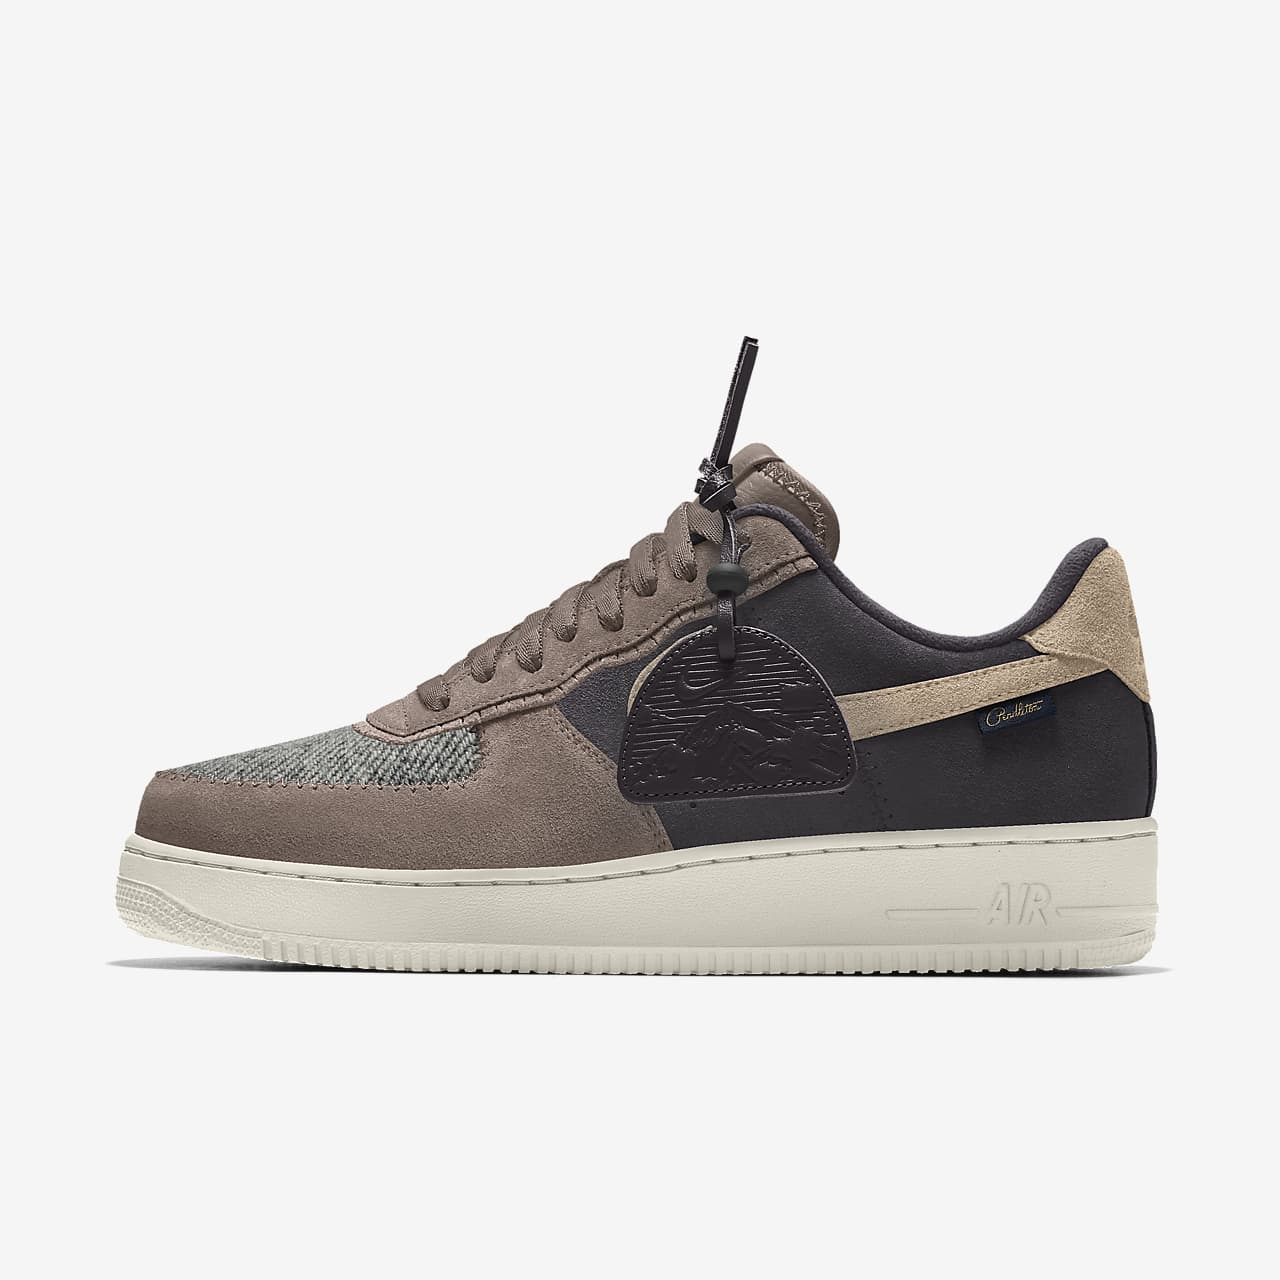 Chaussure personnalisable Air Force 1 Low Pendleton By You